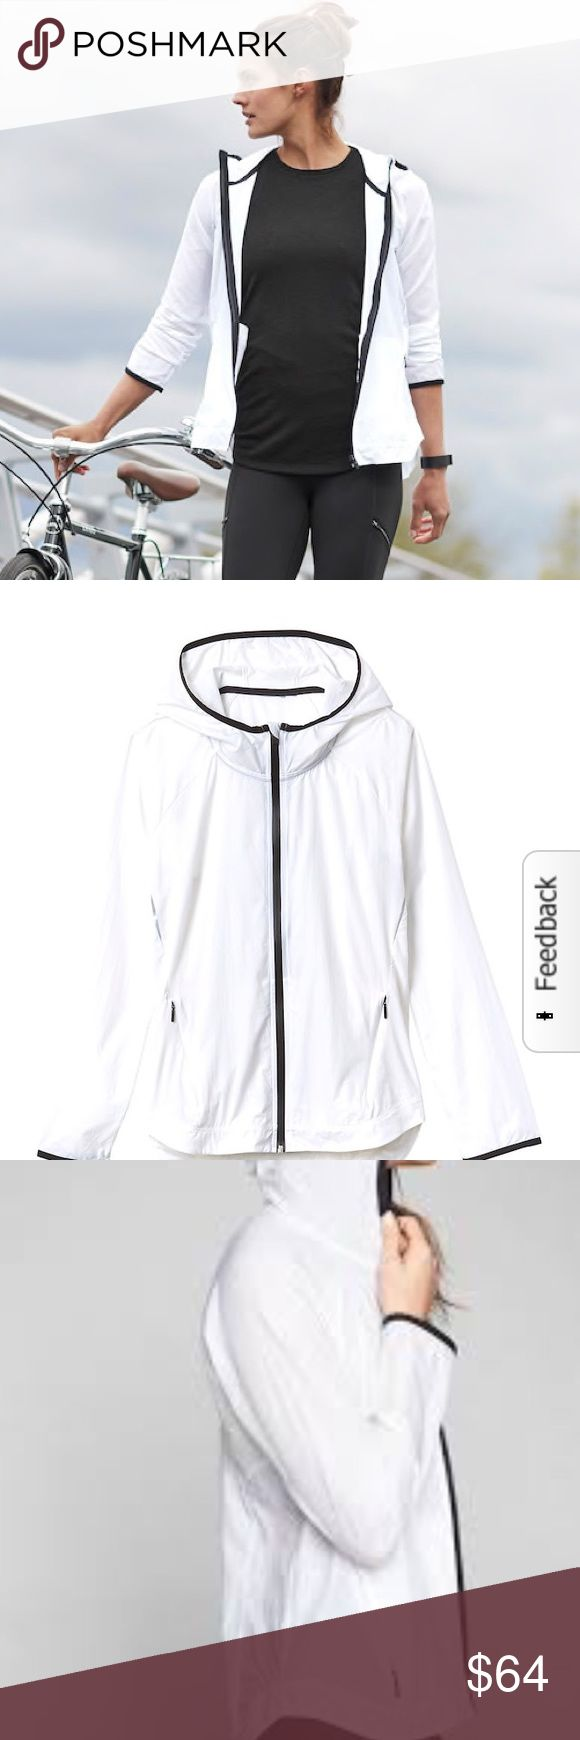 """NWT Athleta Stowe 2.0 Jacket NWT. No flaws. White with black piping; is pretty see- through. Online description: """"Ideal to have on hand when you need that extra layer to protect against the elements, this lightweight hiking shell features 360-degree reflectivity and mesh under the arms for ventilation. INSPIRED FOR: hike/explore, adventure To Fro, adventure travel 2 POCKETS: Front zip secure Reflective details where you want them Mesh for extra ventilation when things heat up #842603""""…"""